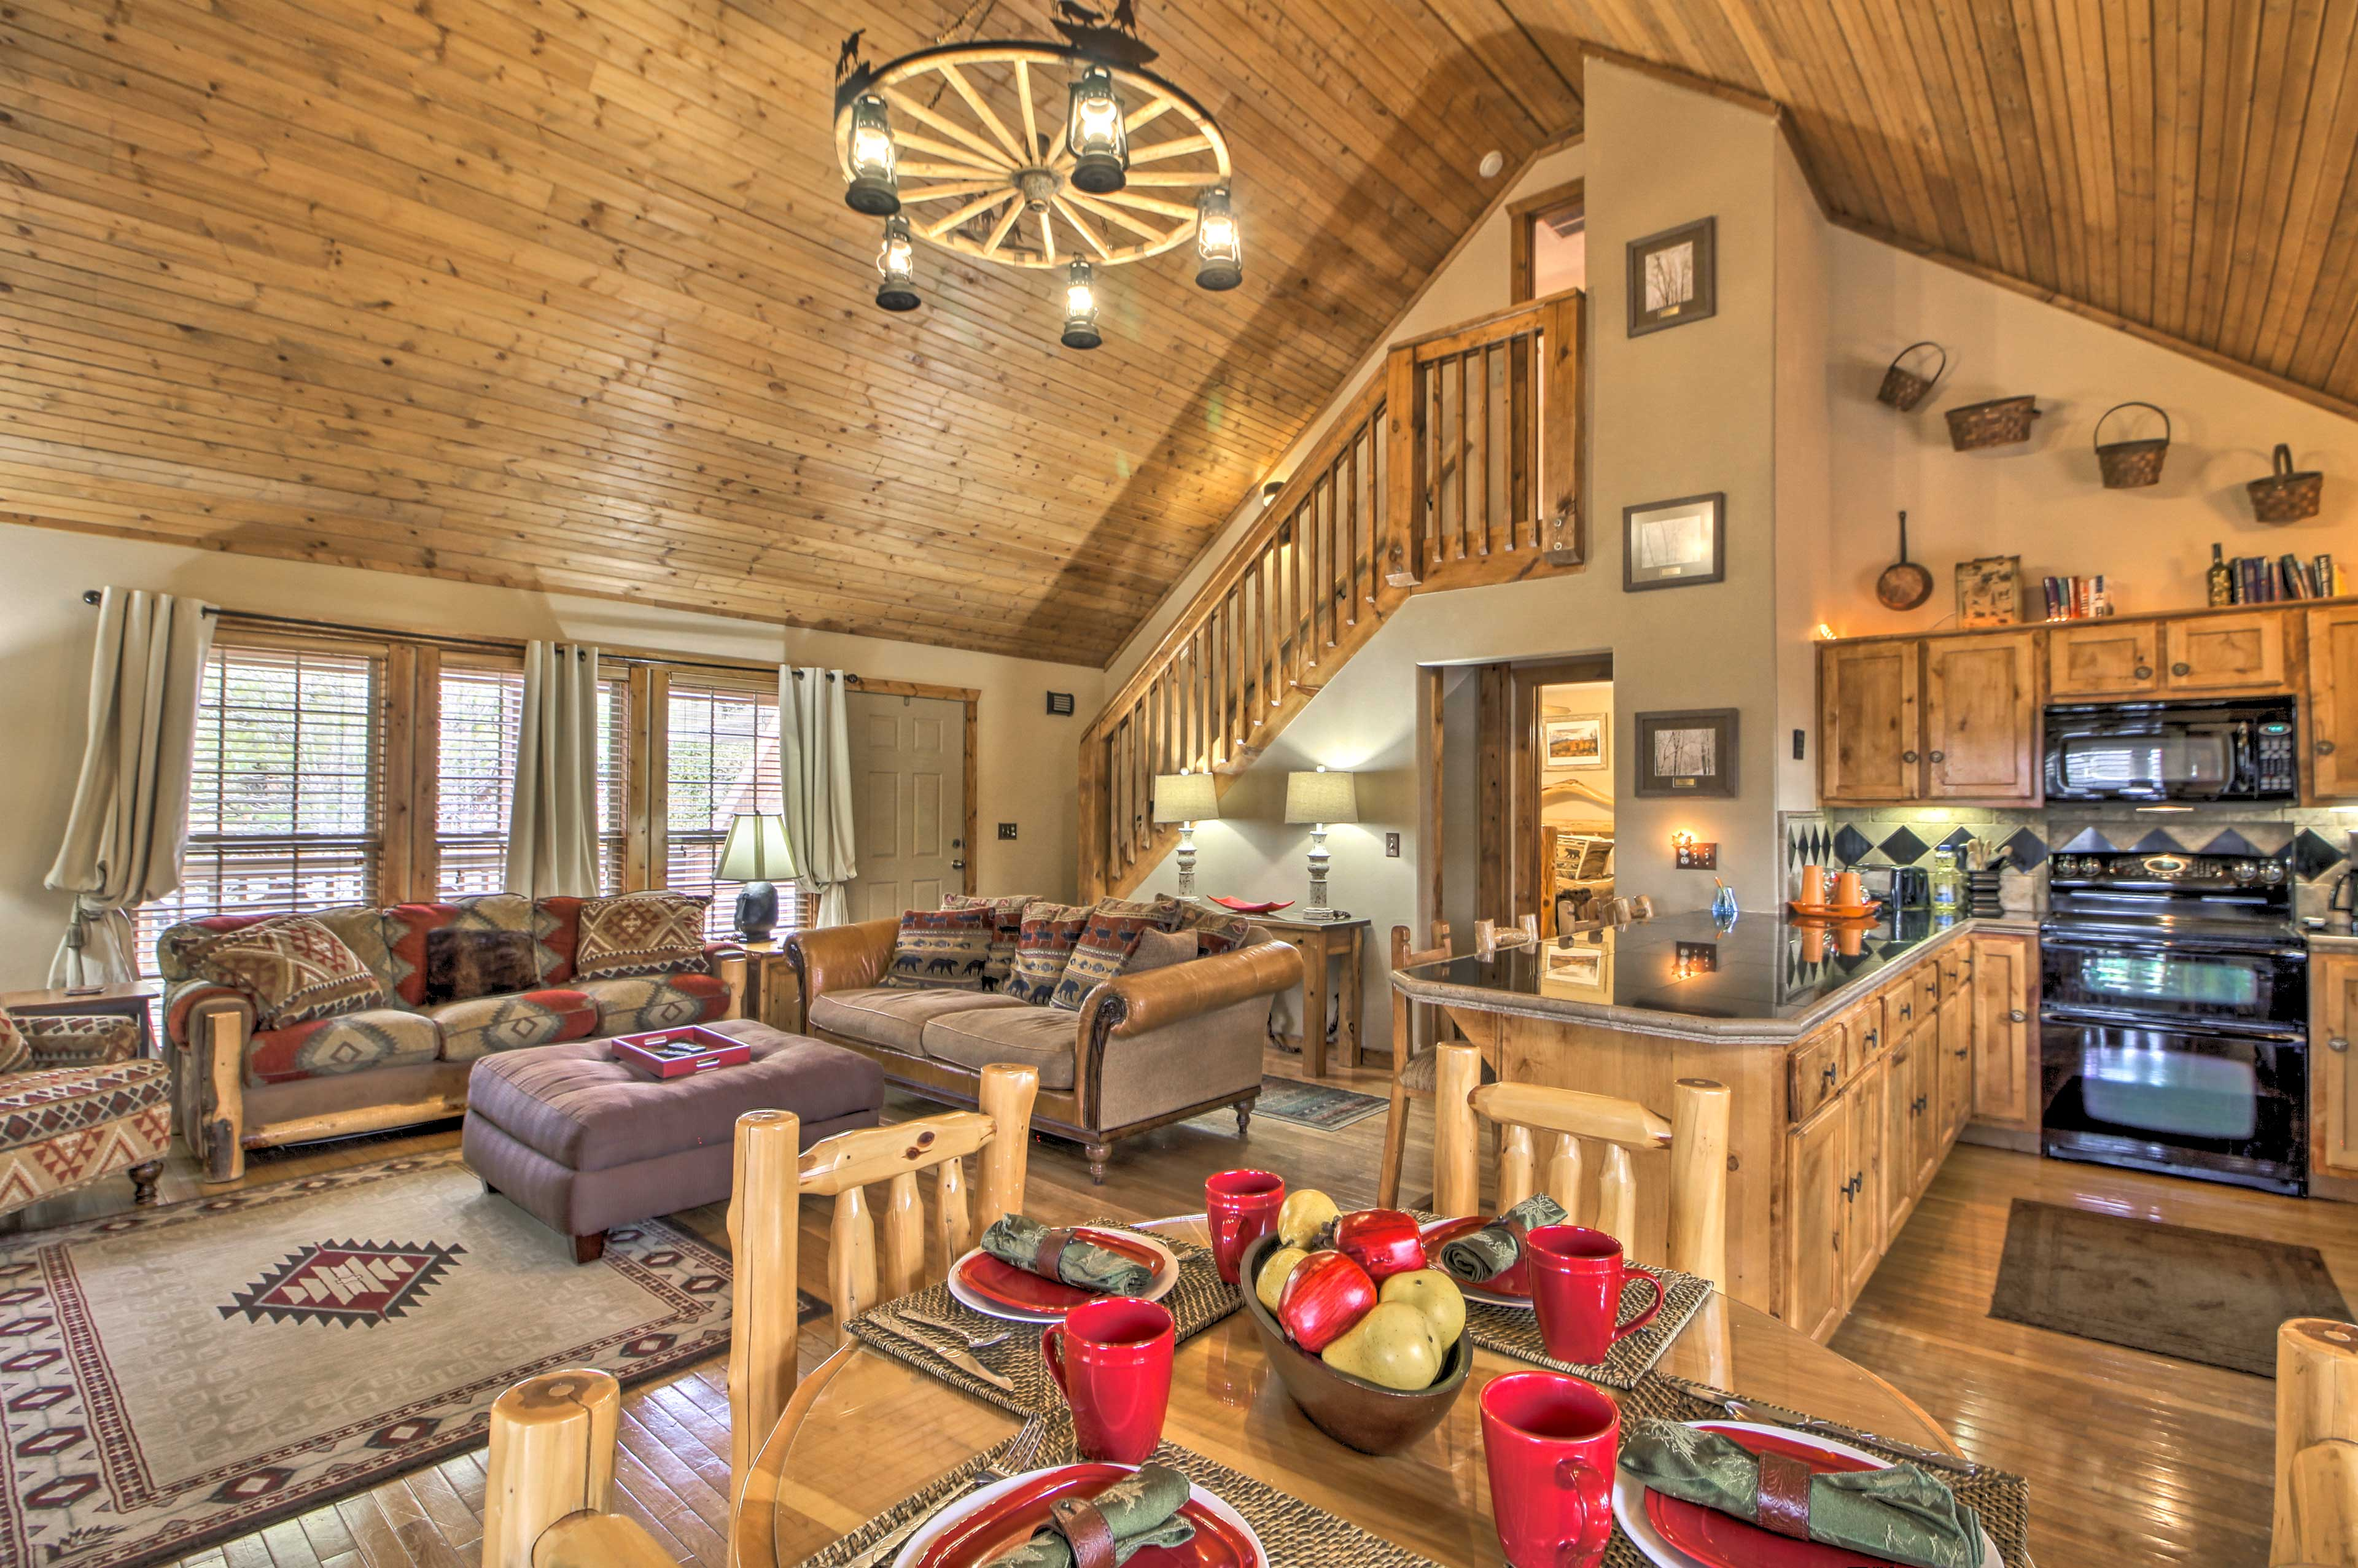 Book a trip to this 4-bedroom, 3-bath vacation rental home in Branson West.